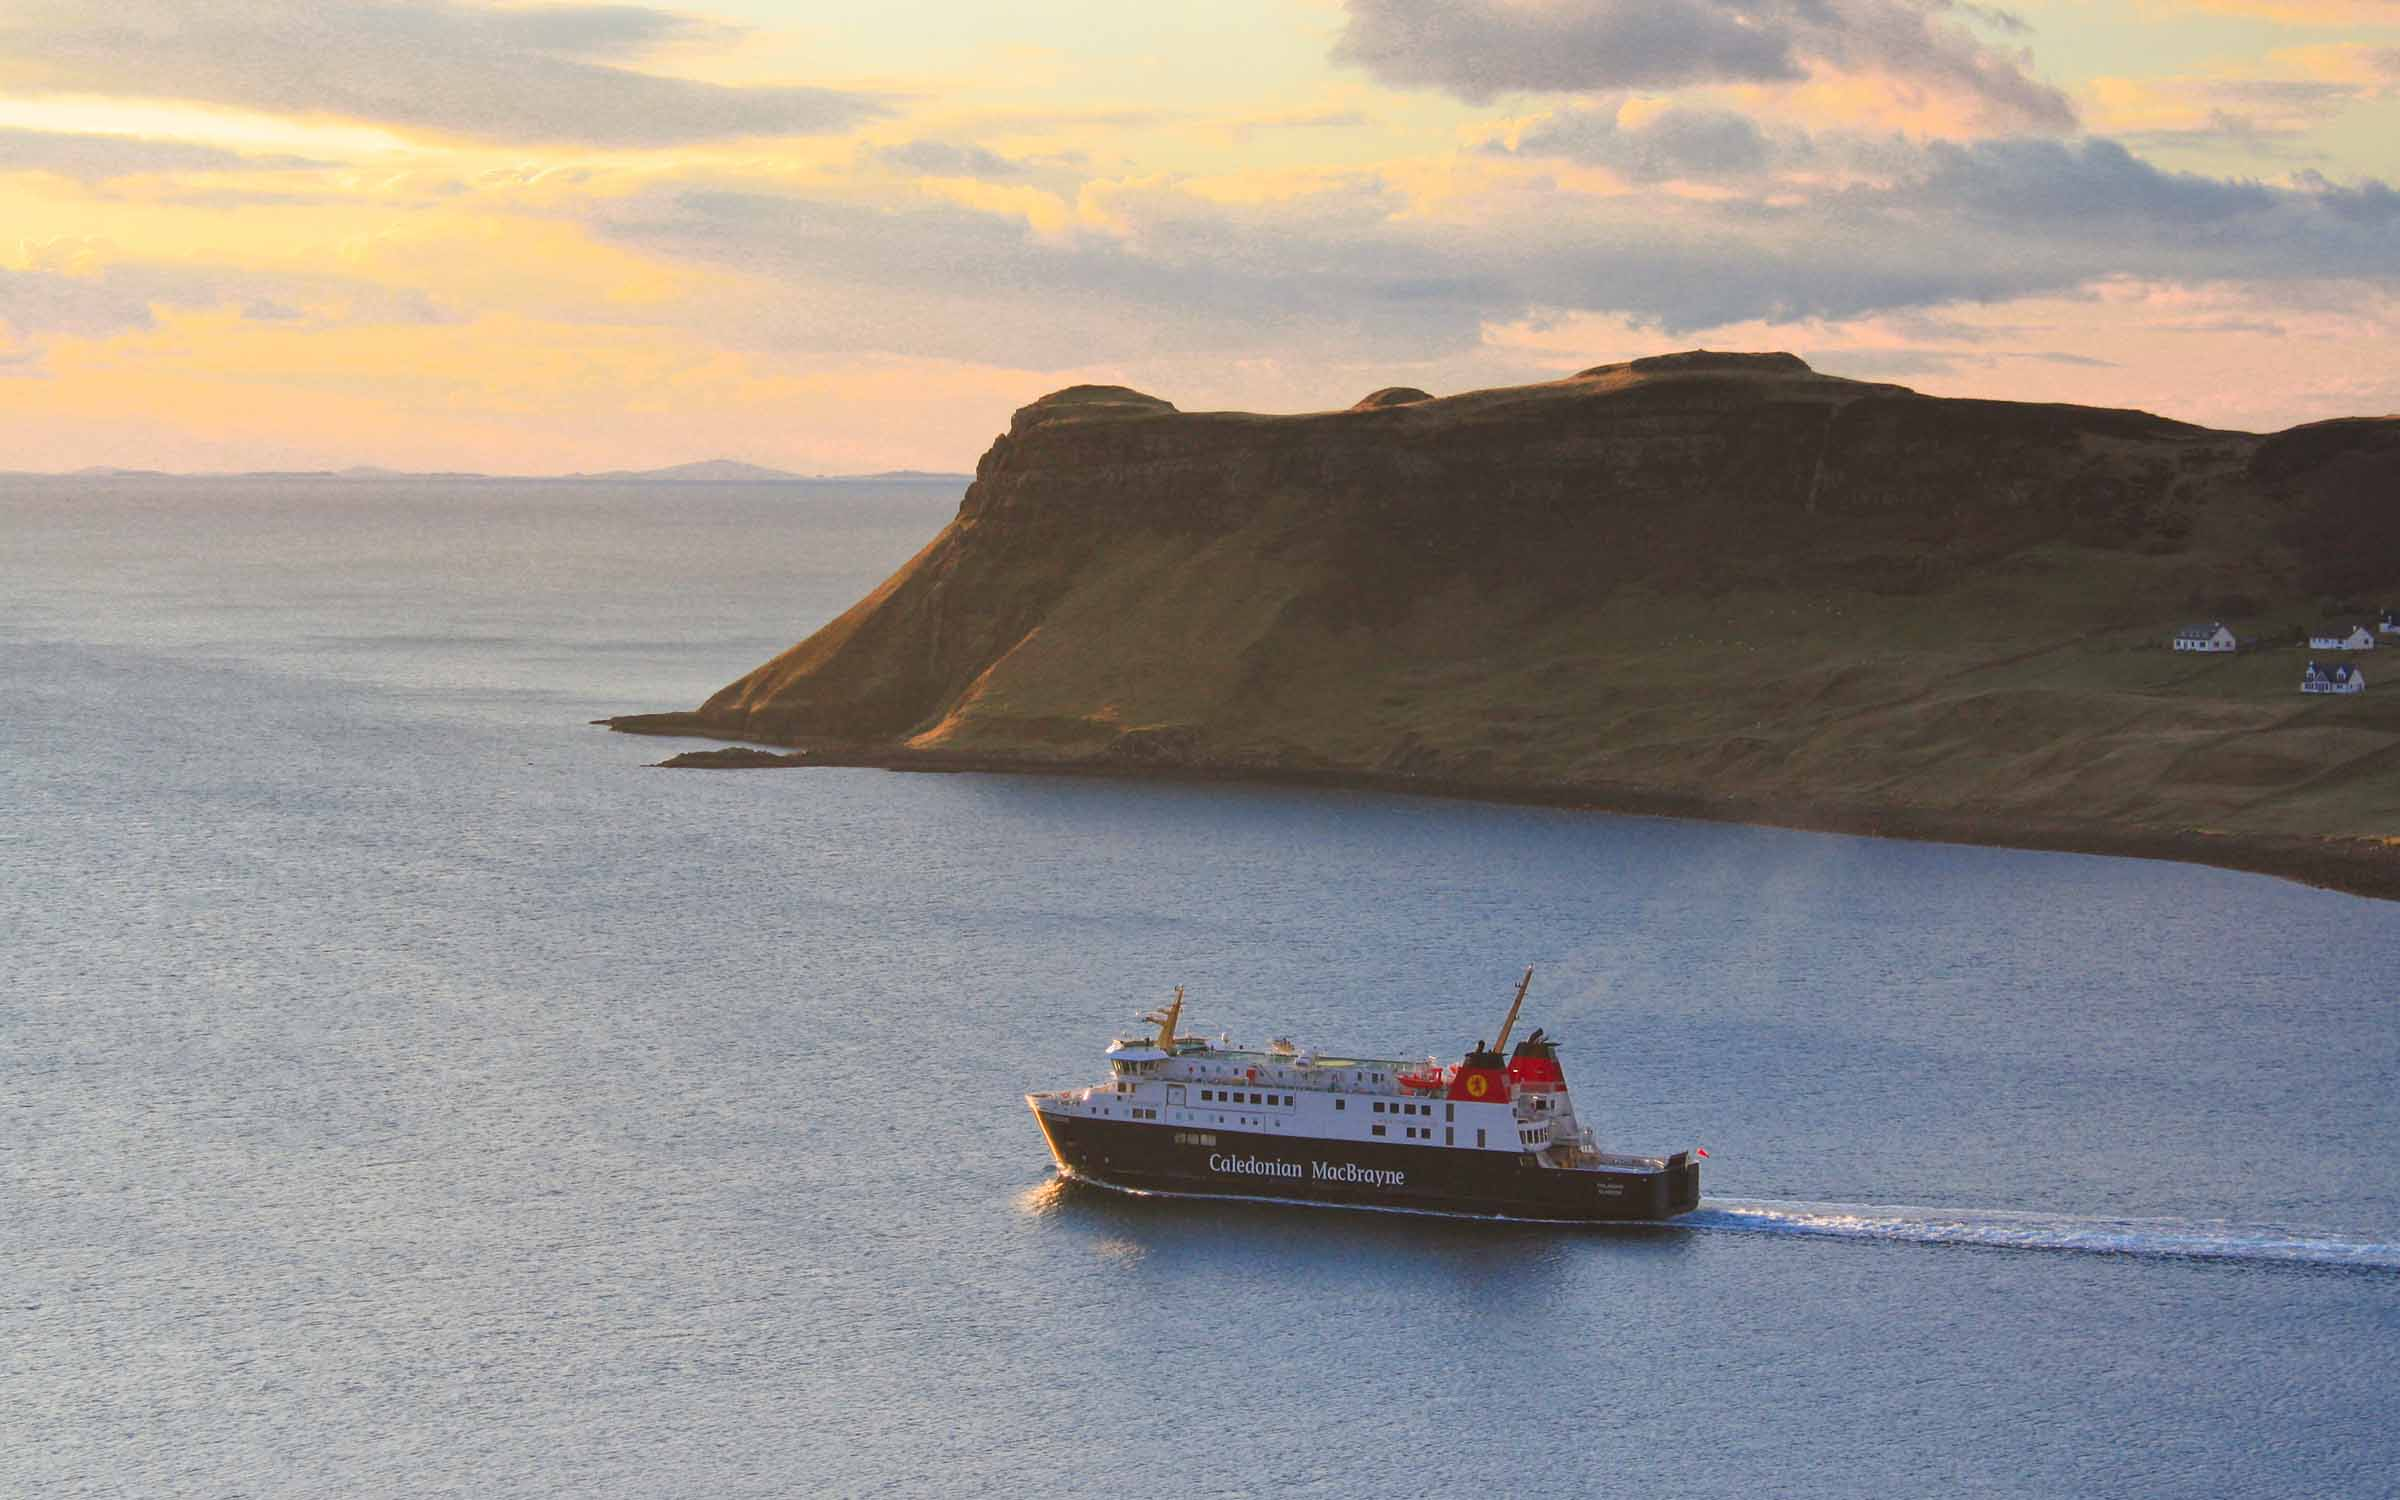 Finlaggan leaving Uig on relief service (Ships of CalMac)